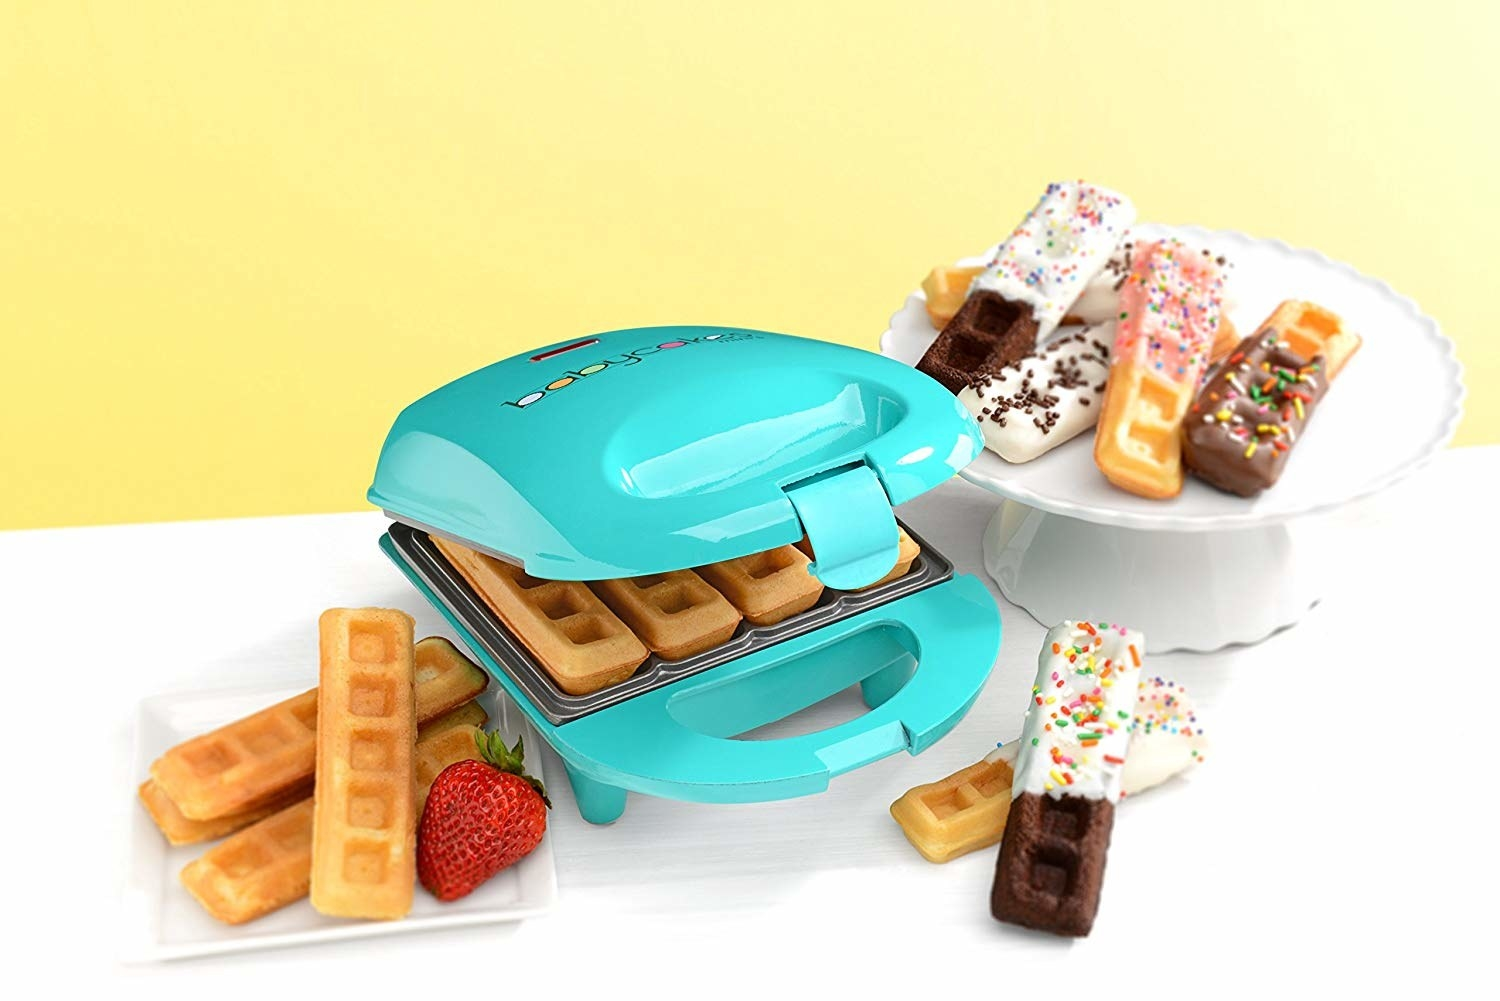 a small dome-like waffle stick maker in teal blue